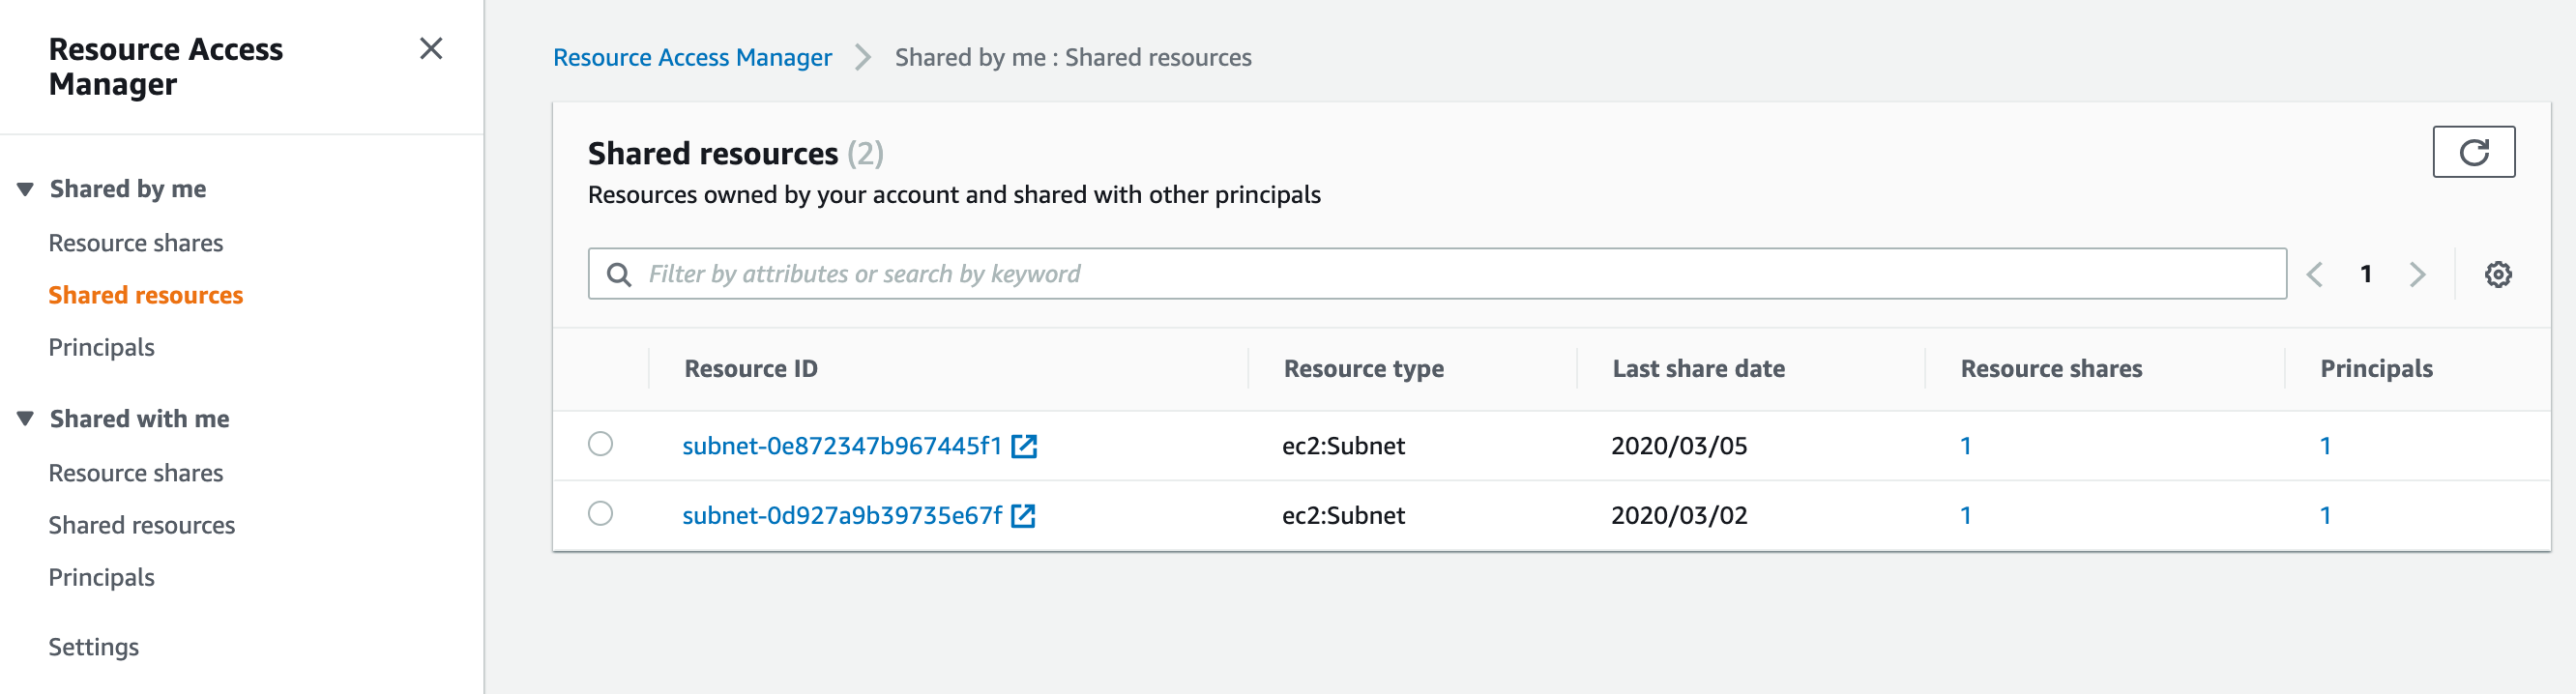 When the resource share is created, this shares your two subnets with the application account and displays the following under shared resources